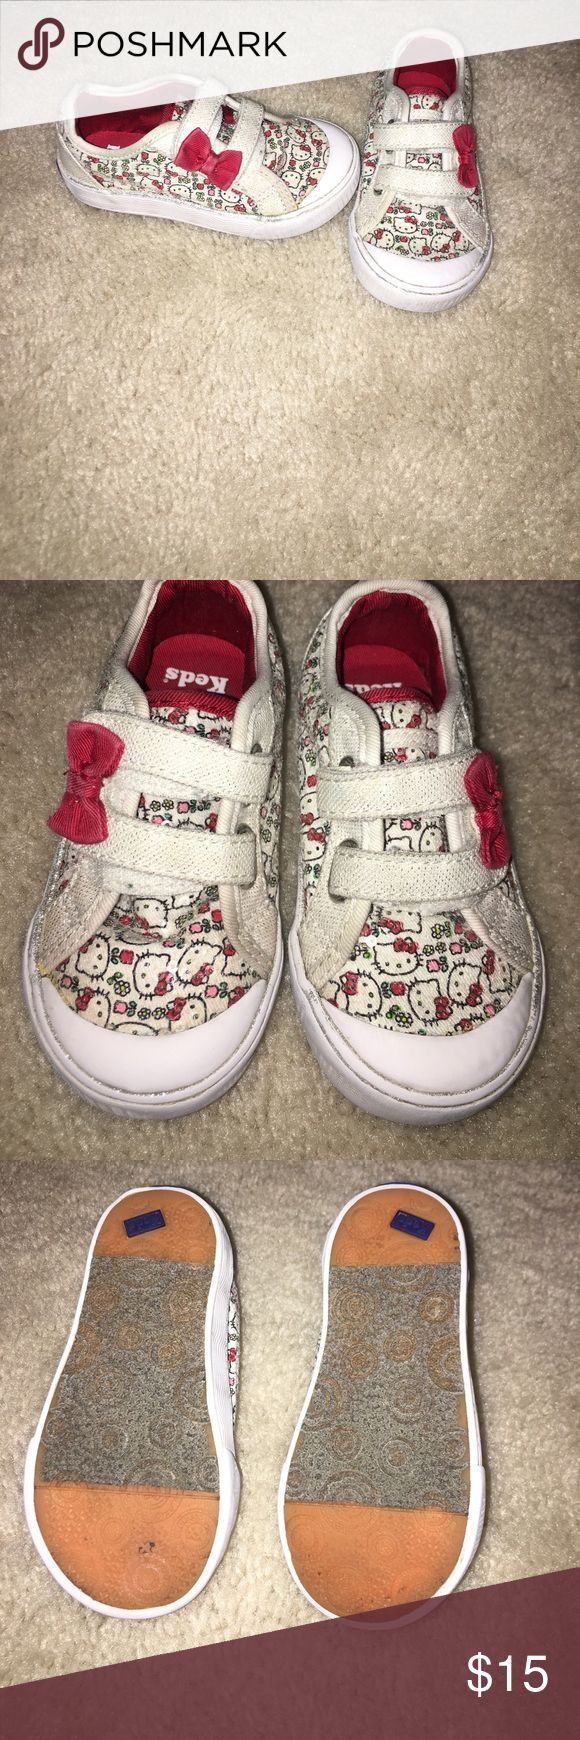 Hello Kitty Keds size 7m These Hello Kitty Keds have a lot of life left in them. See pictures for wear. These are in GUC with some wear, but clean toes and no rips or tears in the fabric. Keds Shoes Sneakers